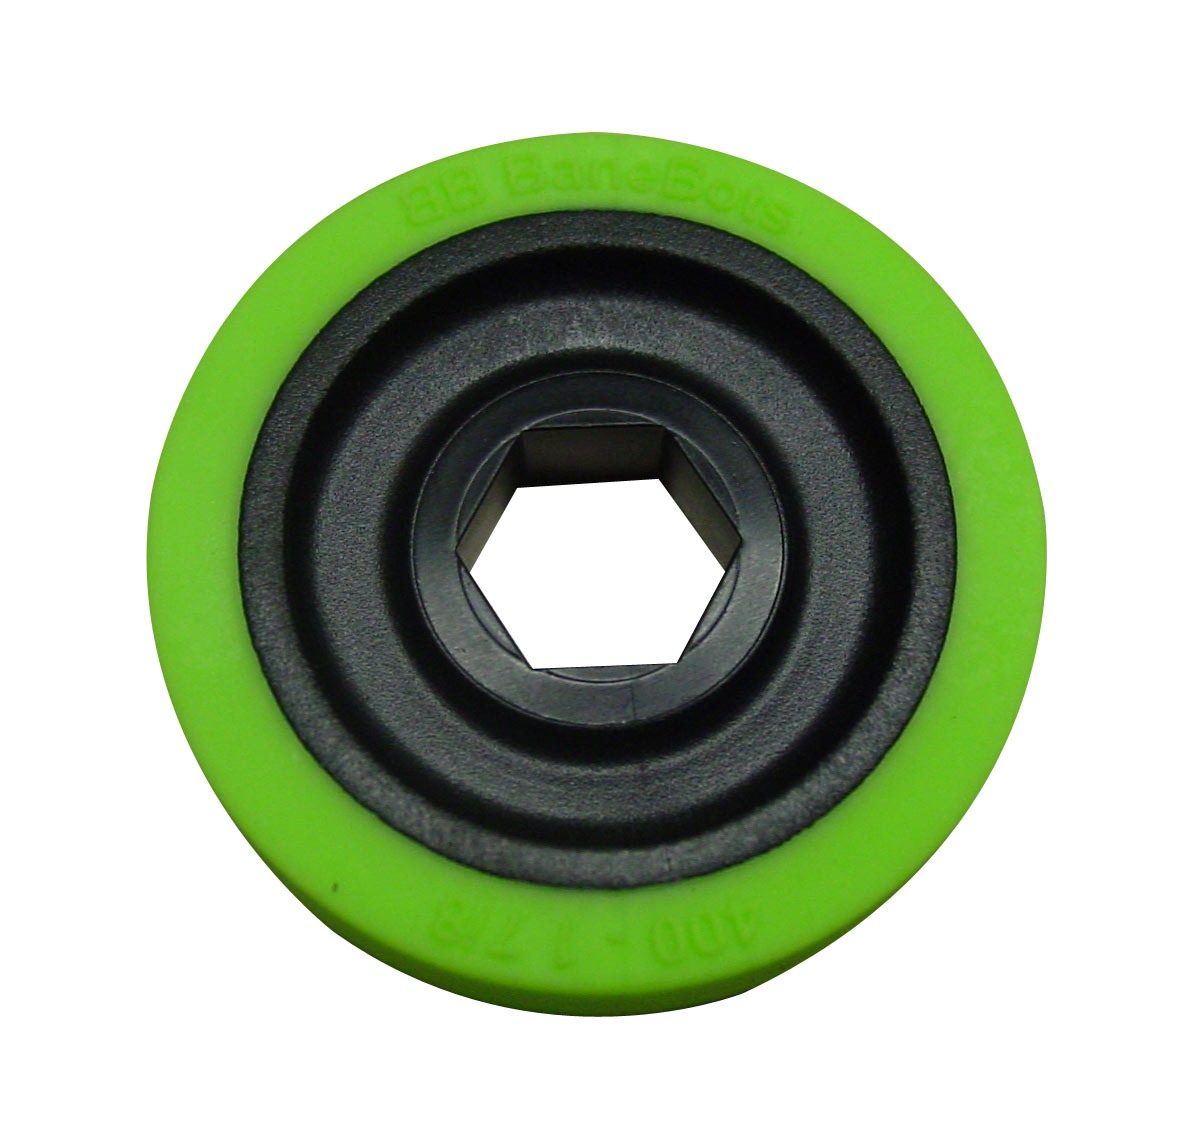 BaneBots Wheel, 1-7/8 x 0.4in., 1/2in. Hex Mount, 30A Green